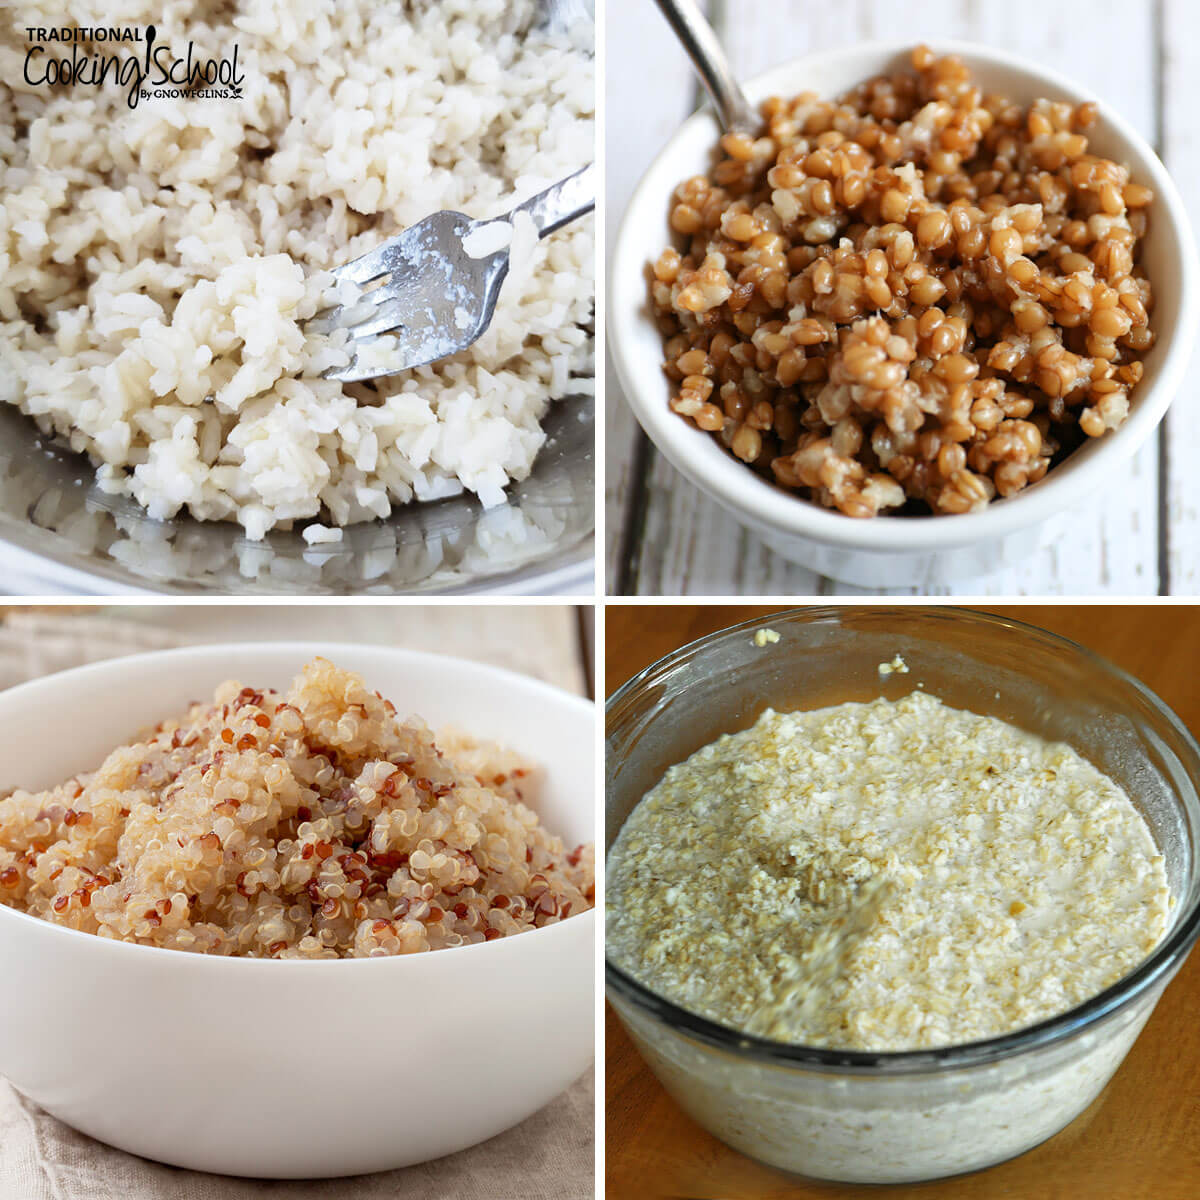 photo collage of different cooked grains for feeding sourdough (from top to bottom, left to right): rice, einkorn, quinoa, oats